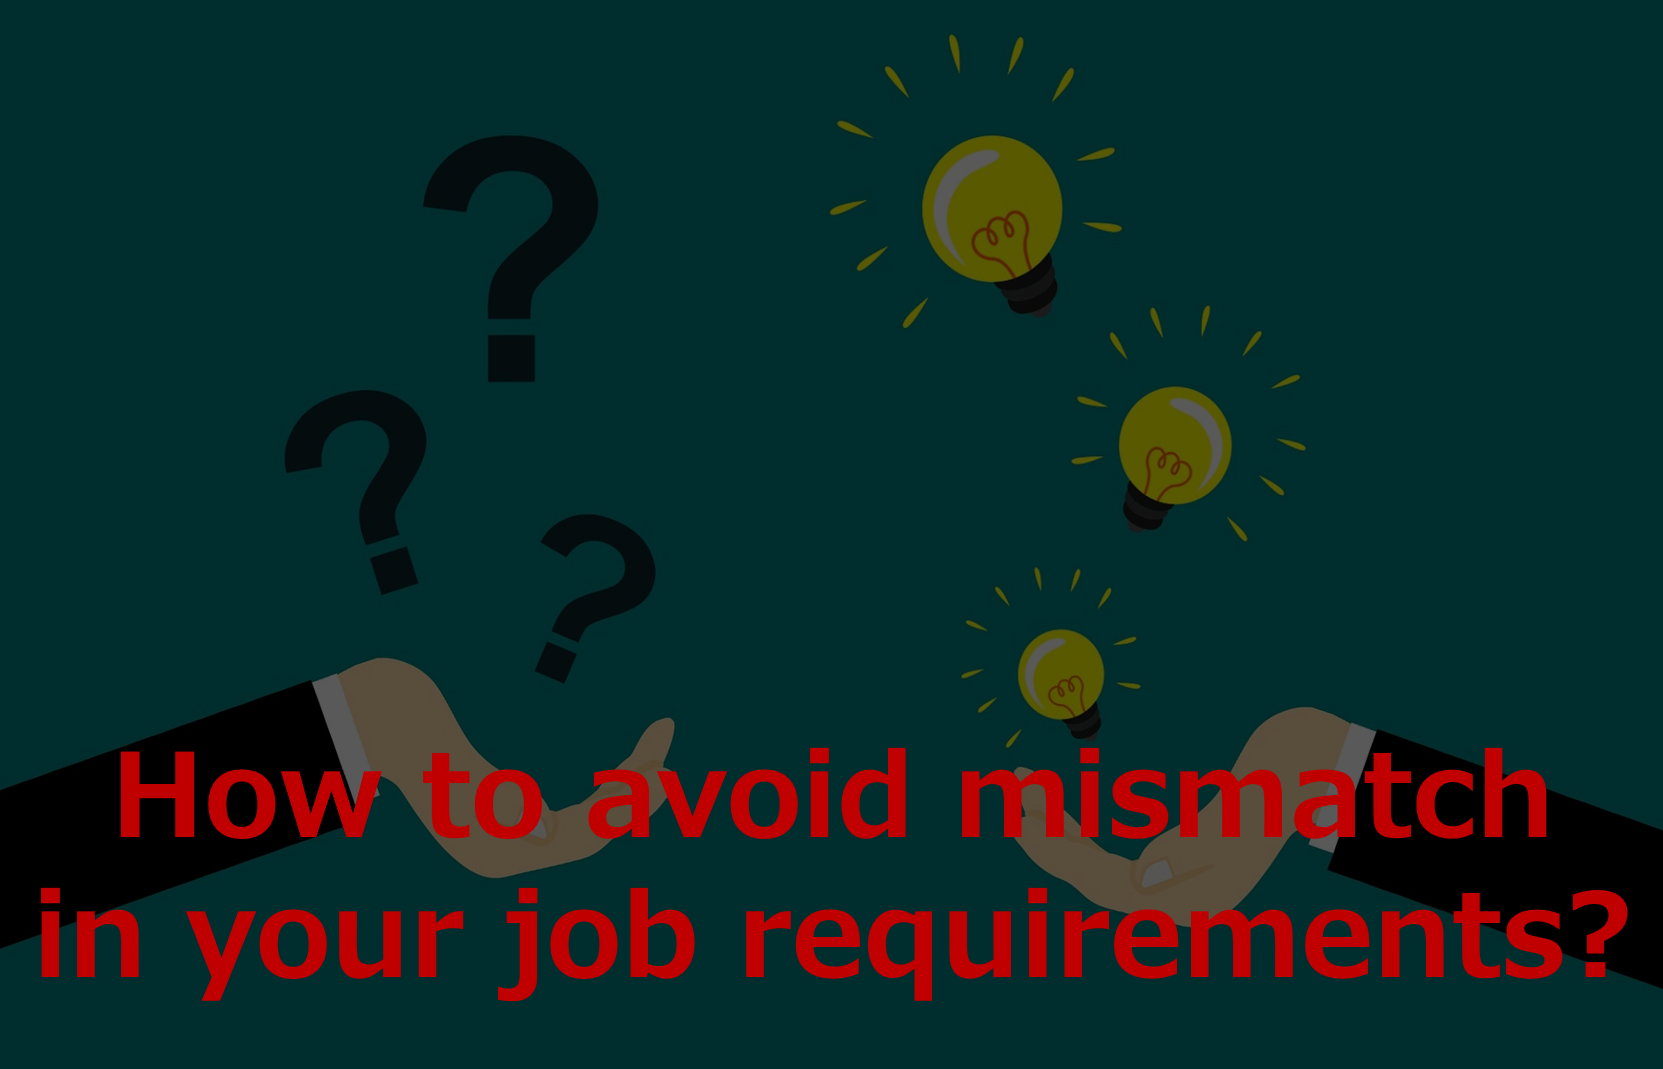 How to avoid mismatch in your job requirements